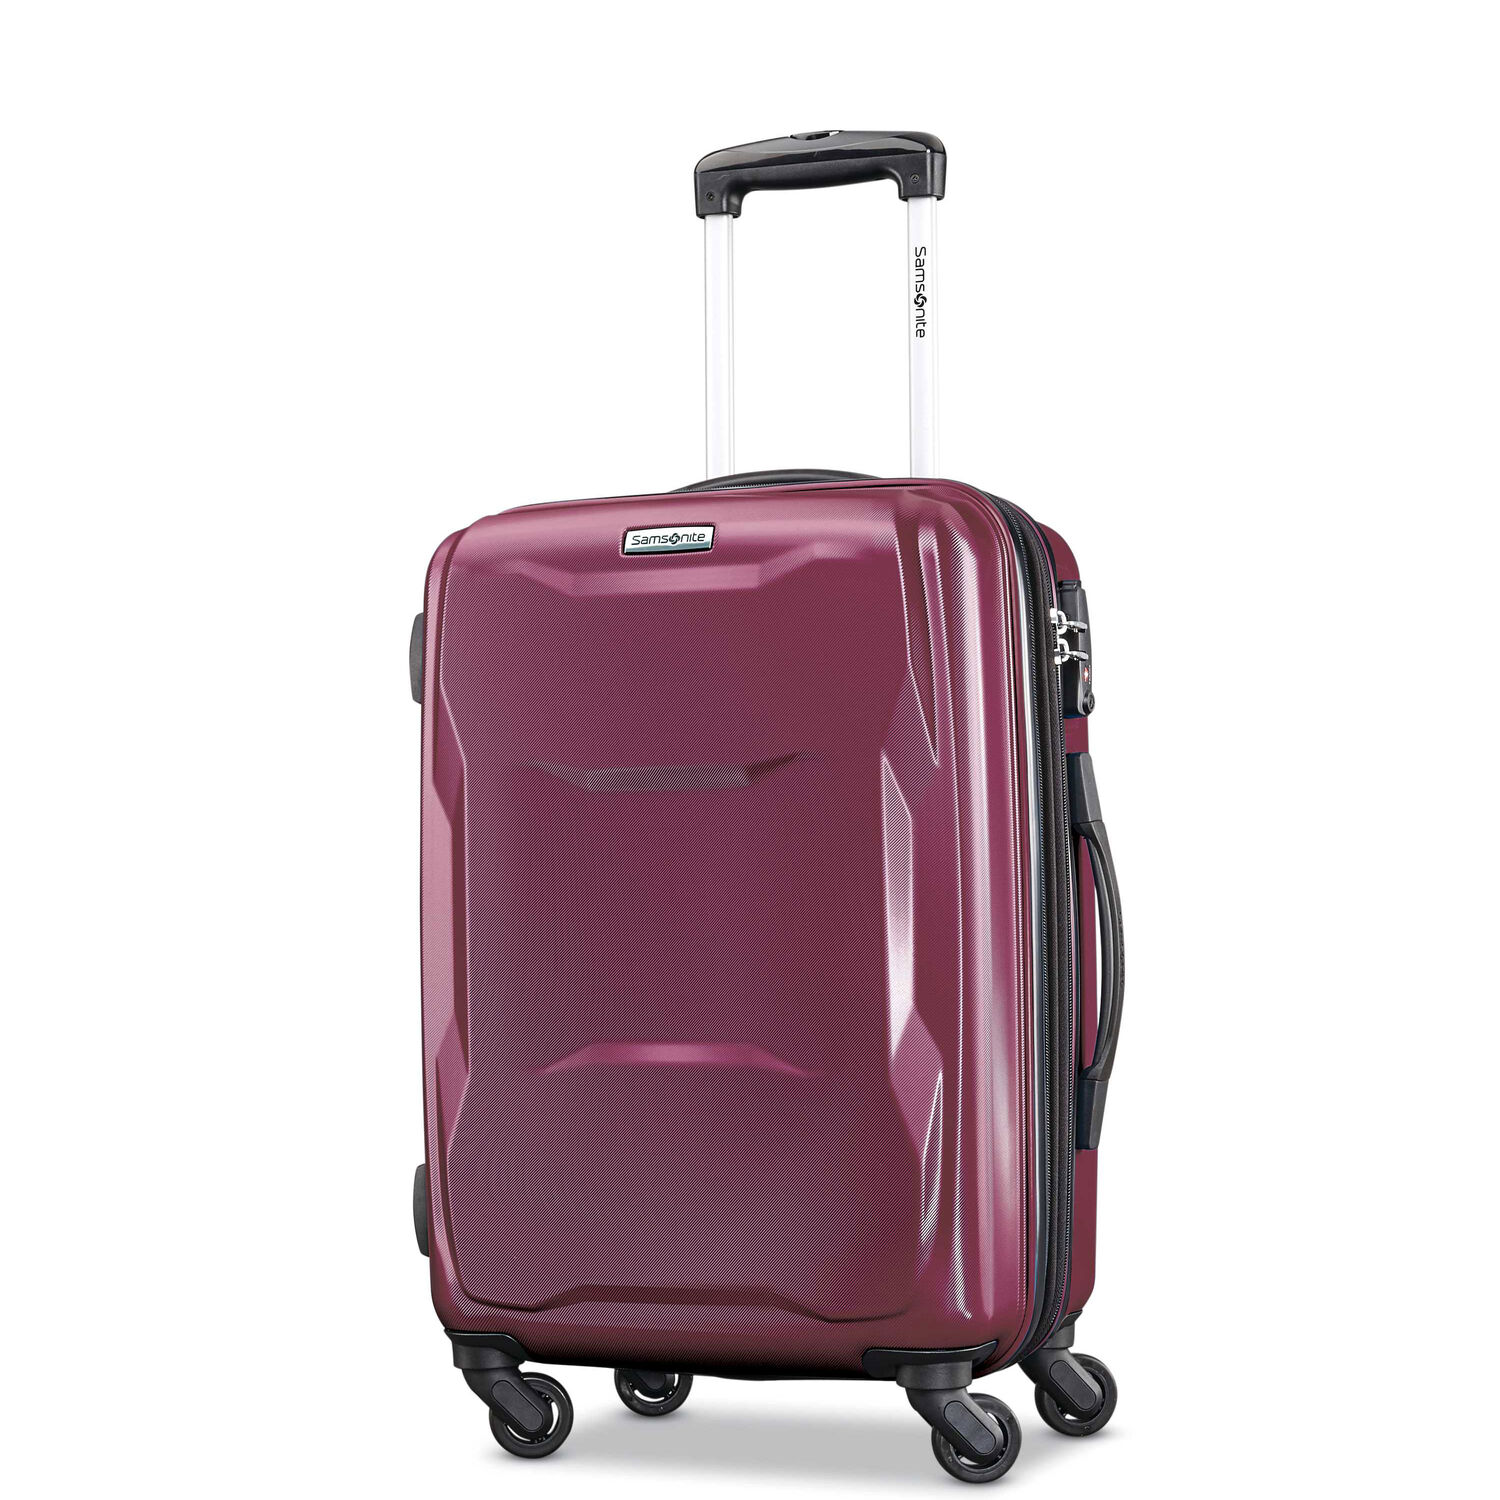 Samsonite Pivot 20